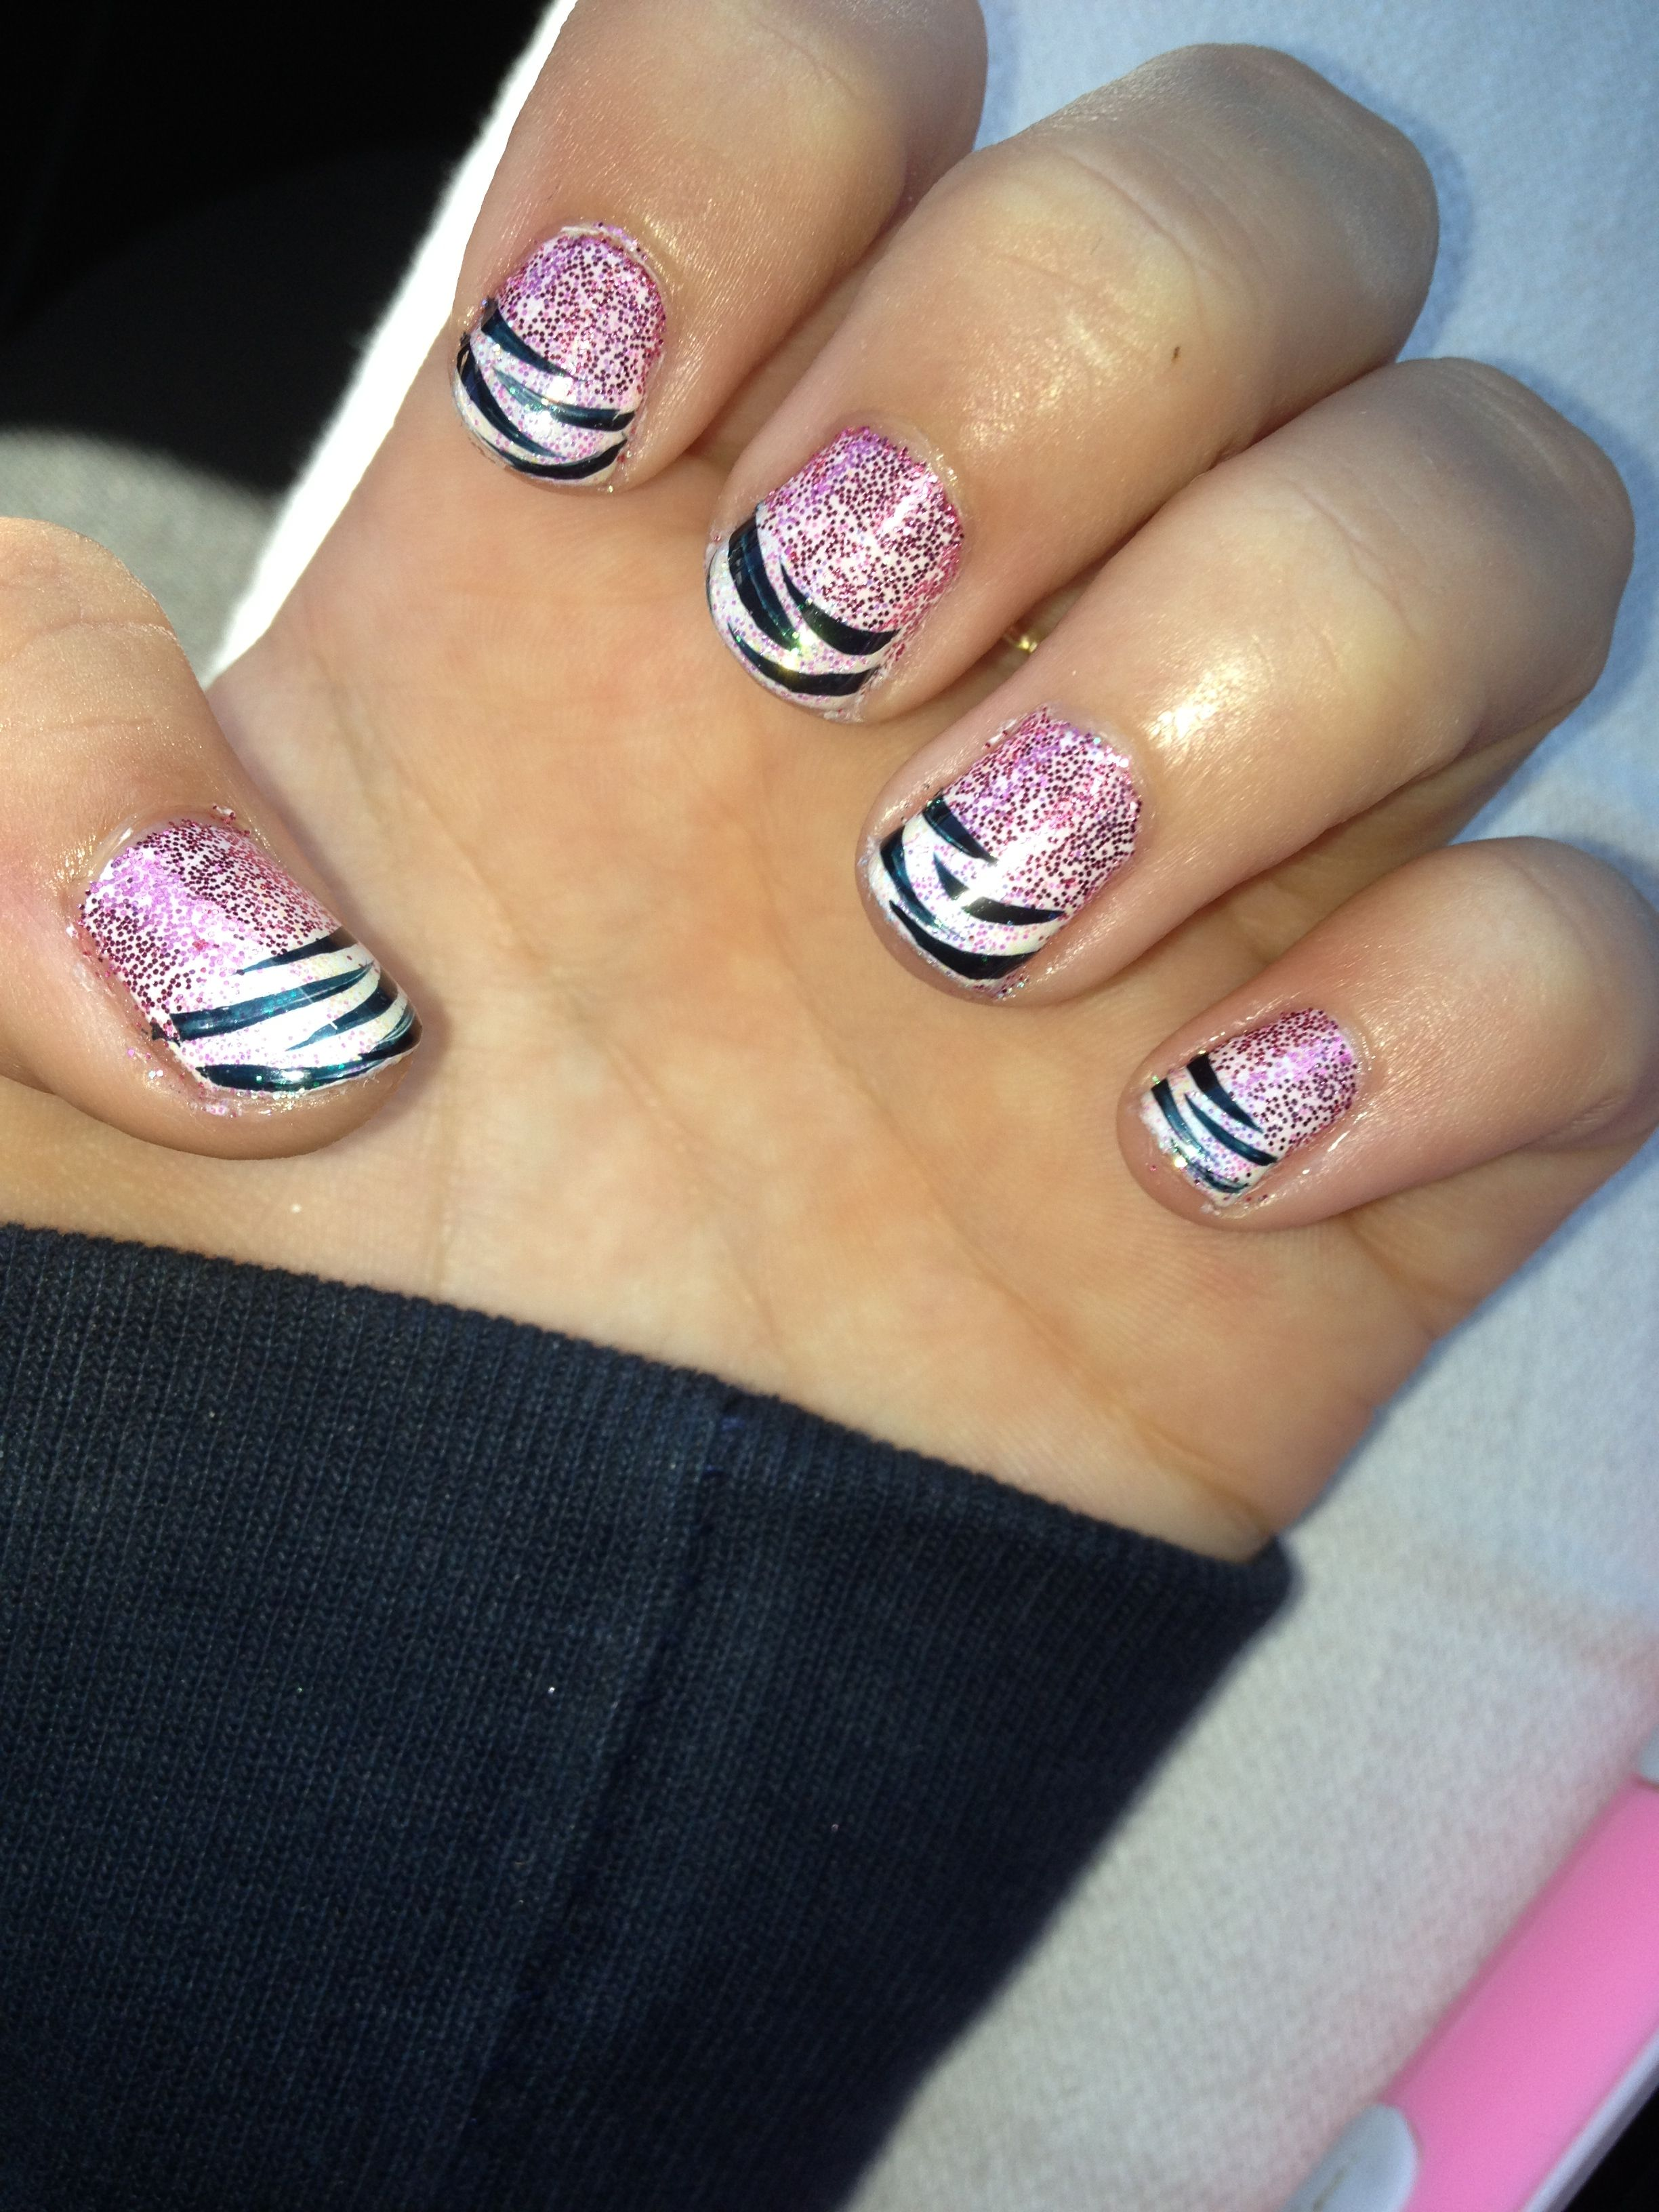 shellac nail design makeup and accessories pinterest